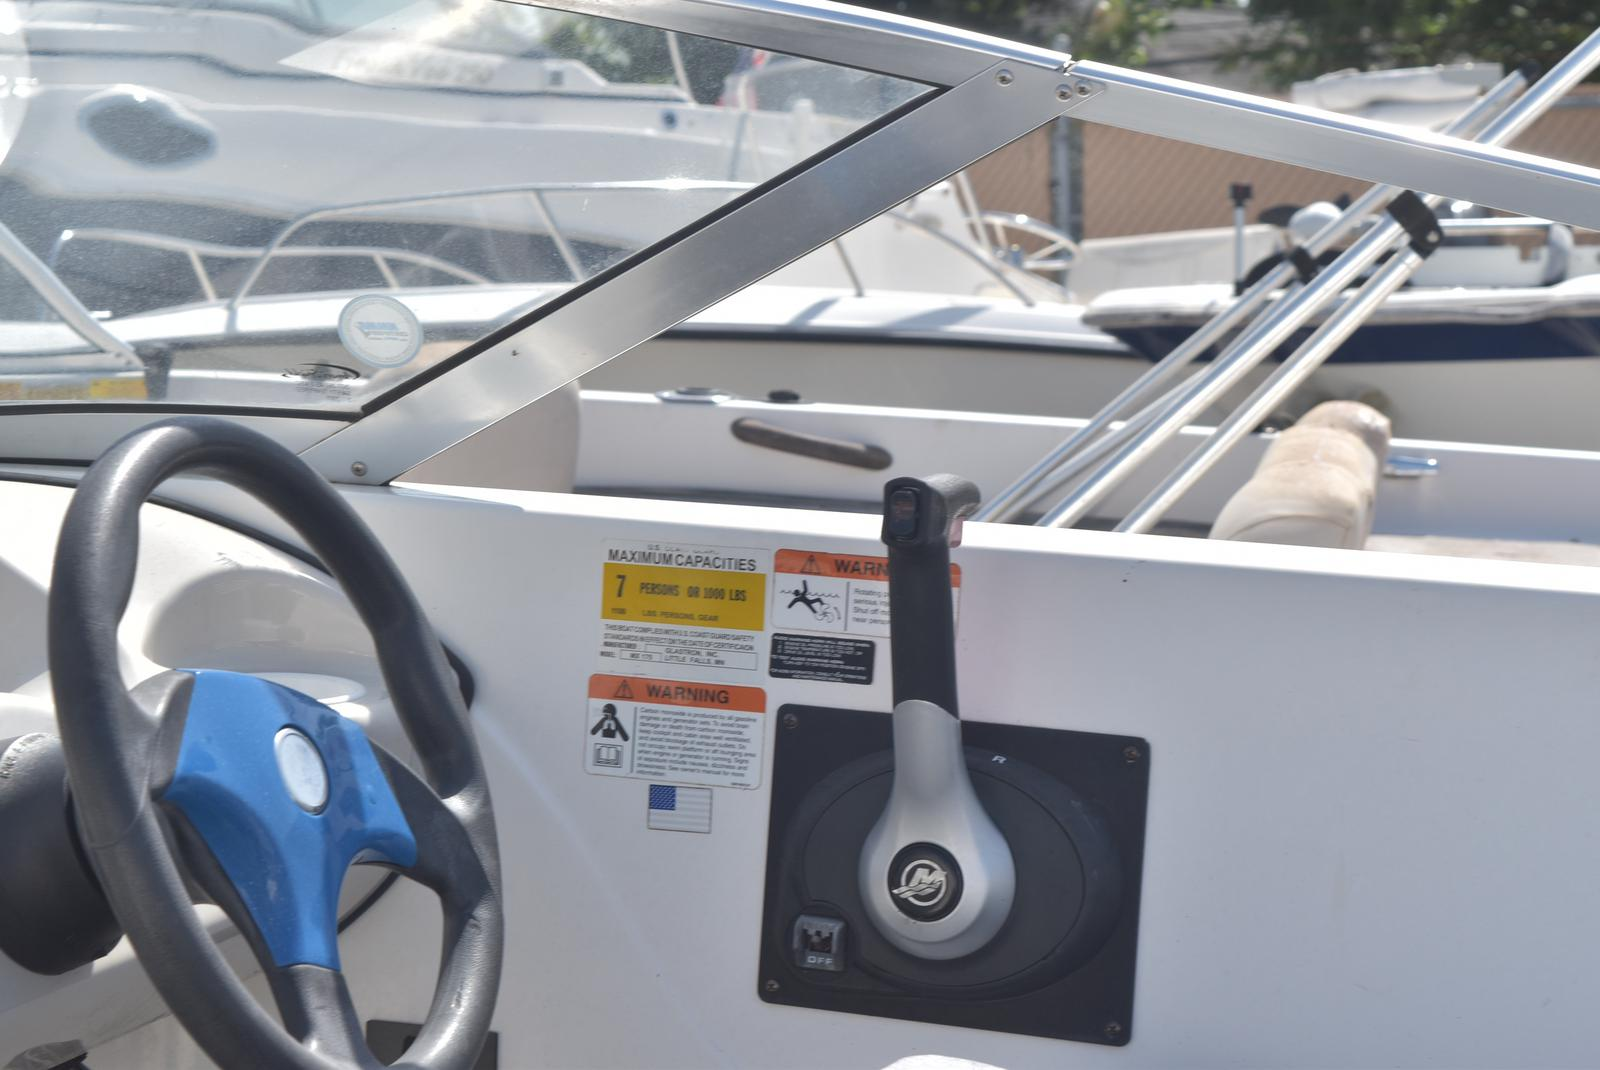 2006 Glastron boat for sale, model of the boat is MX 175 & Image # 13 of 21